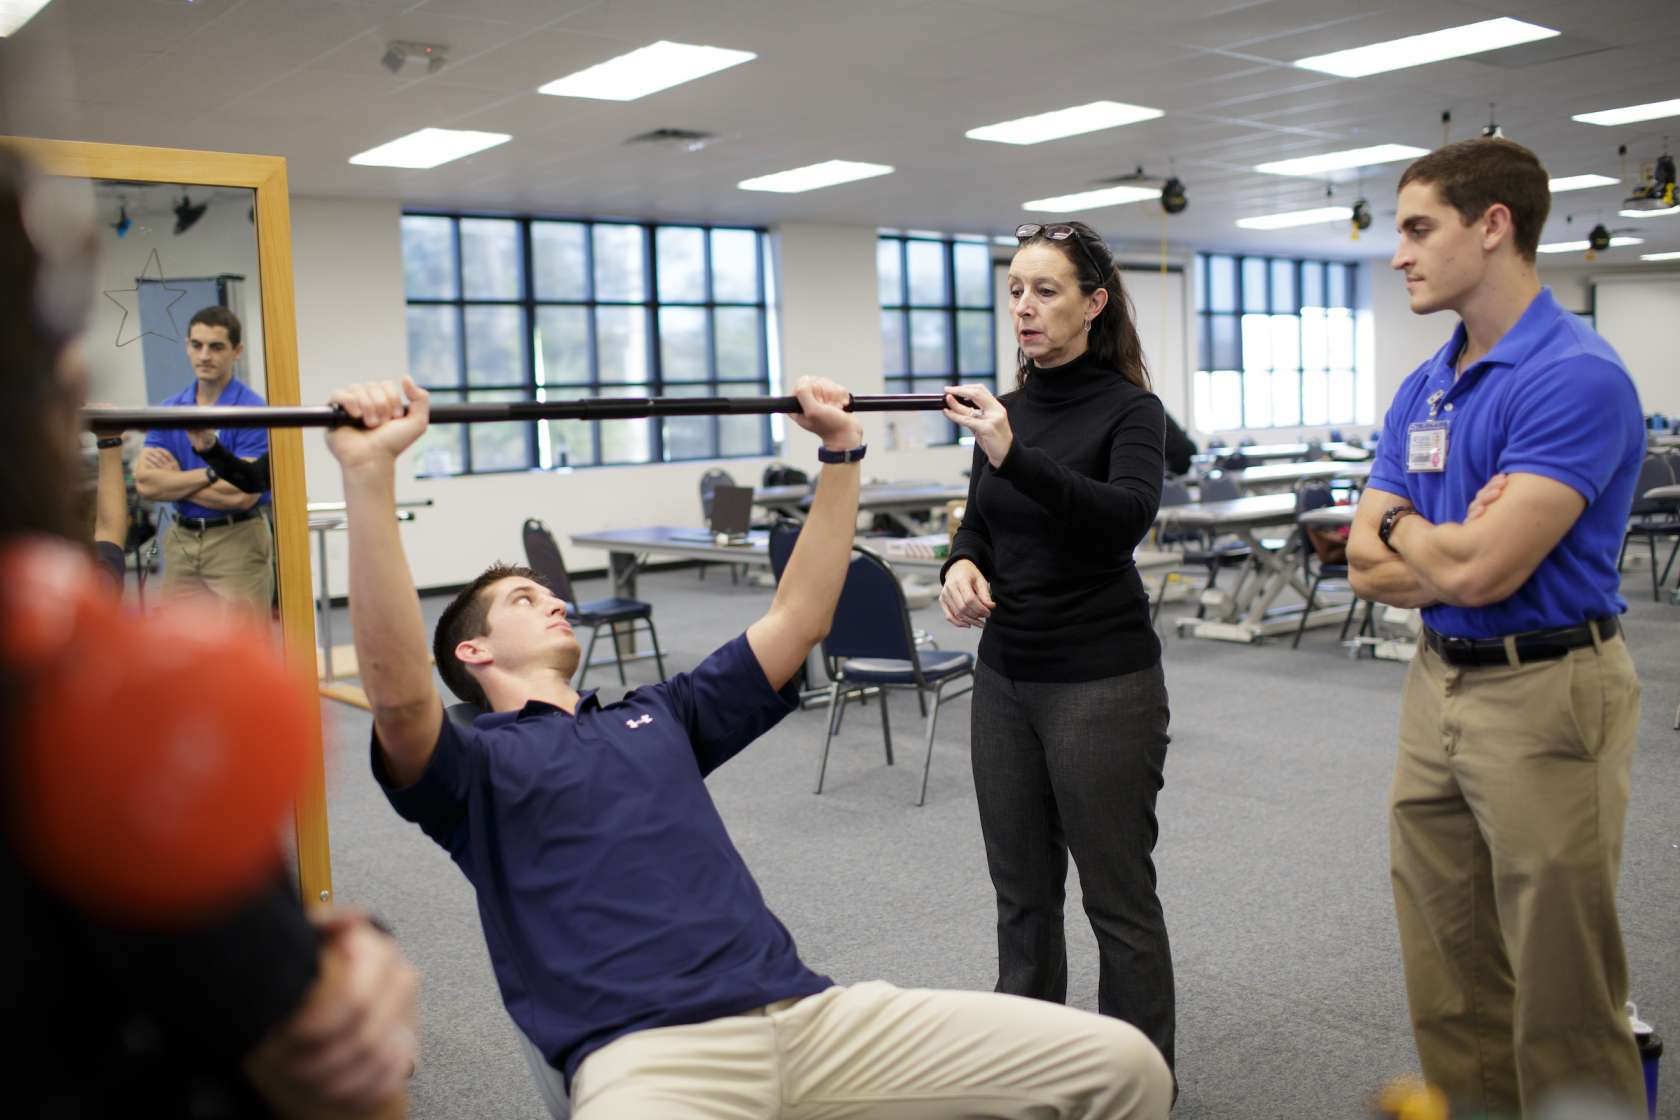 Musculoskeletal patient day, where Dr. Kim Dunleavy is explaining an exercise on a student lifting a barbell.